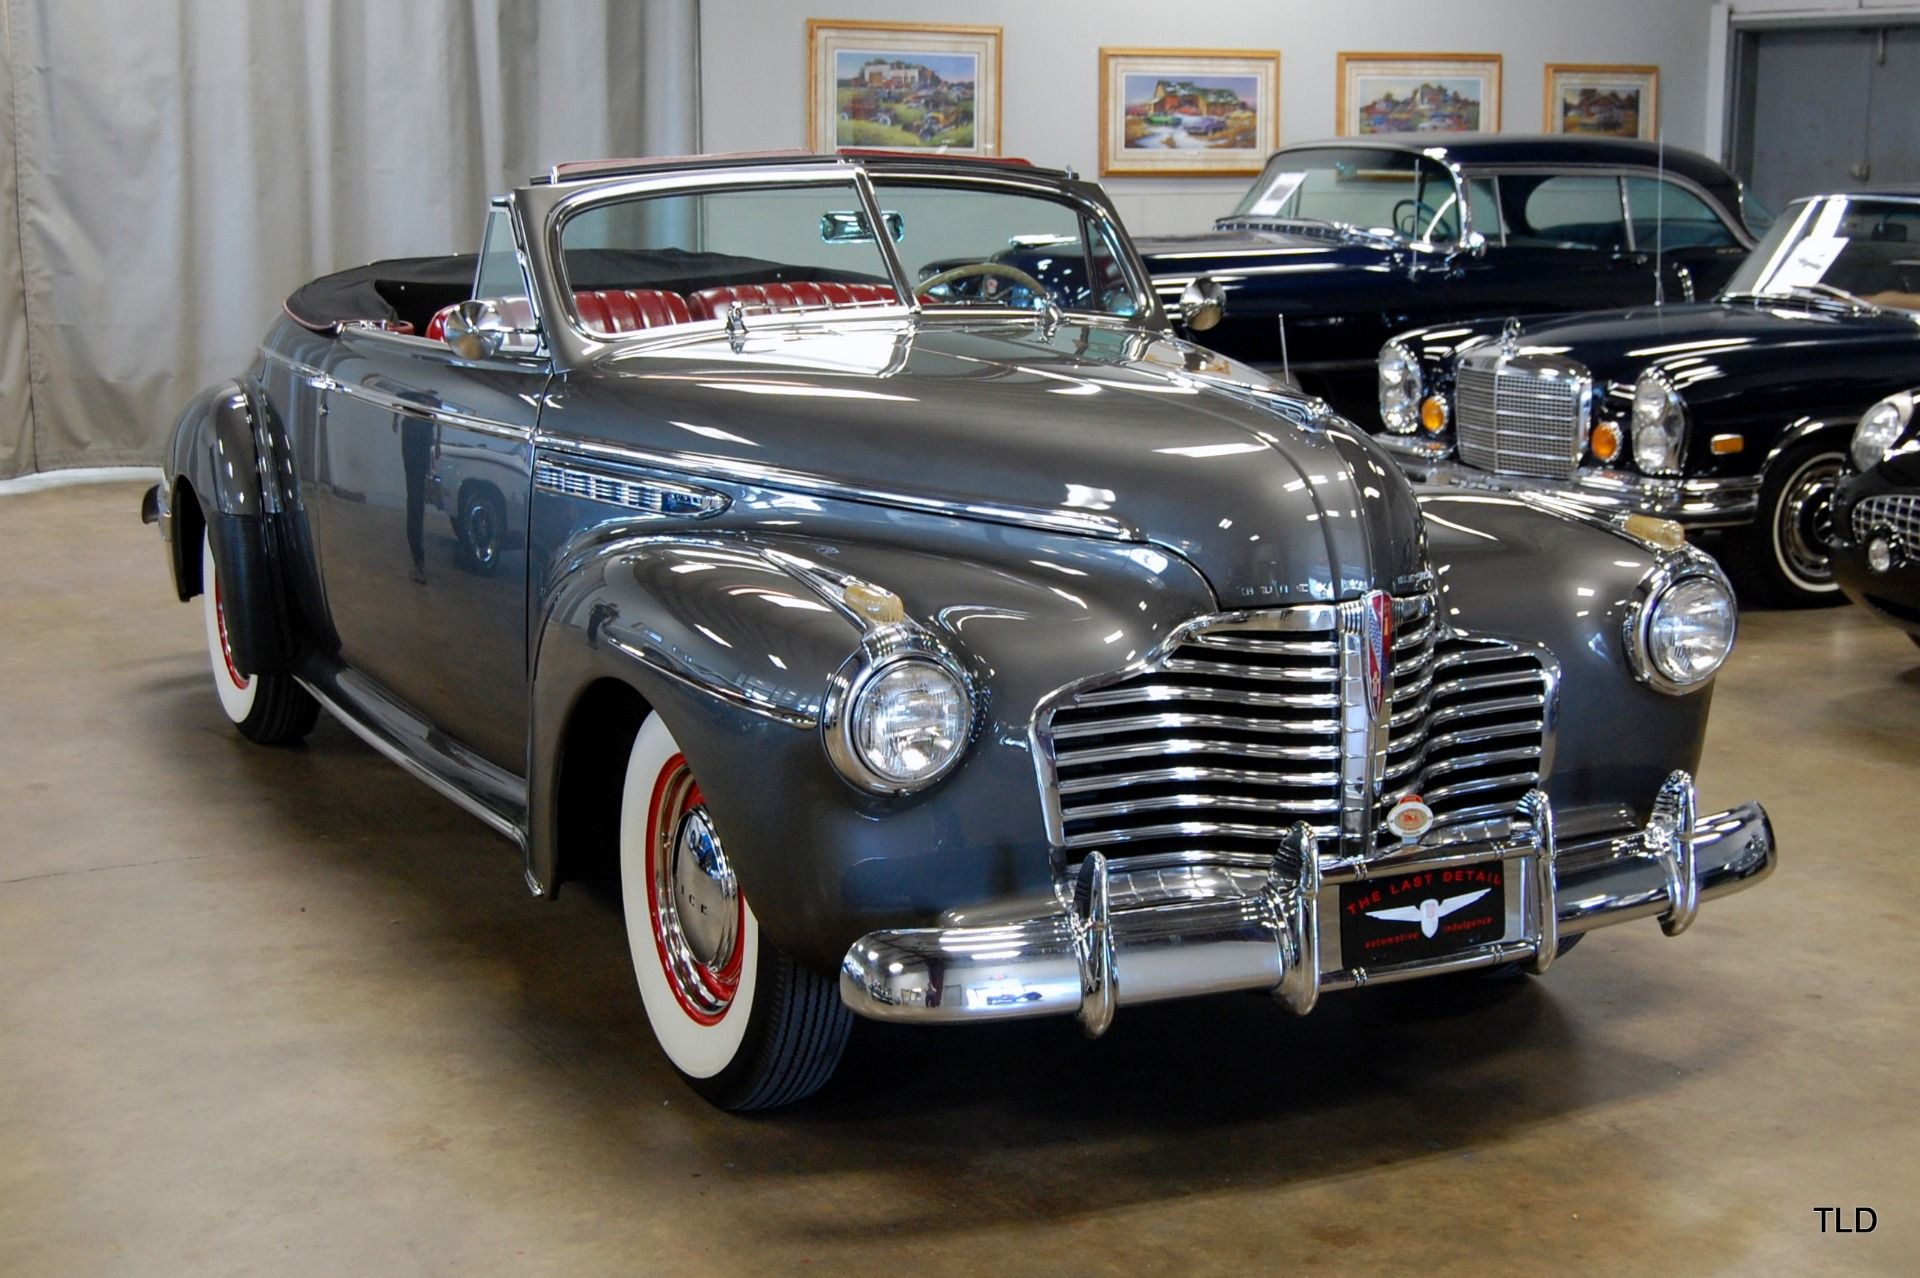 1941 Buick Super Convertible Coupe Buick Cars Classic Cars Buick